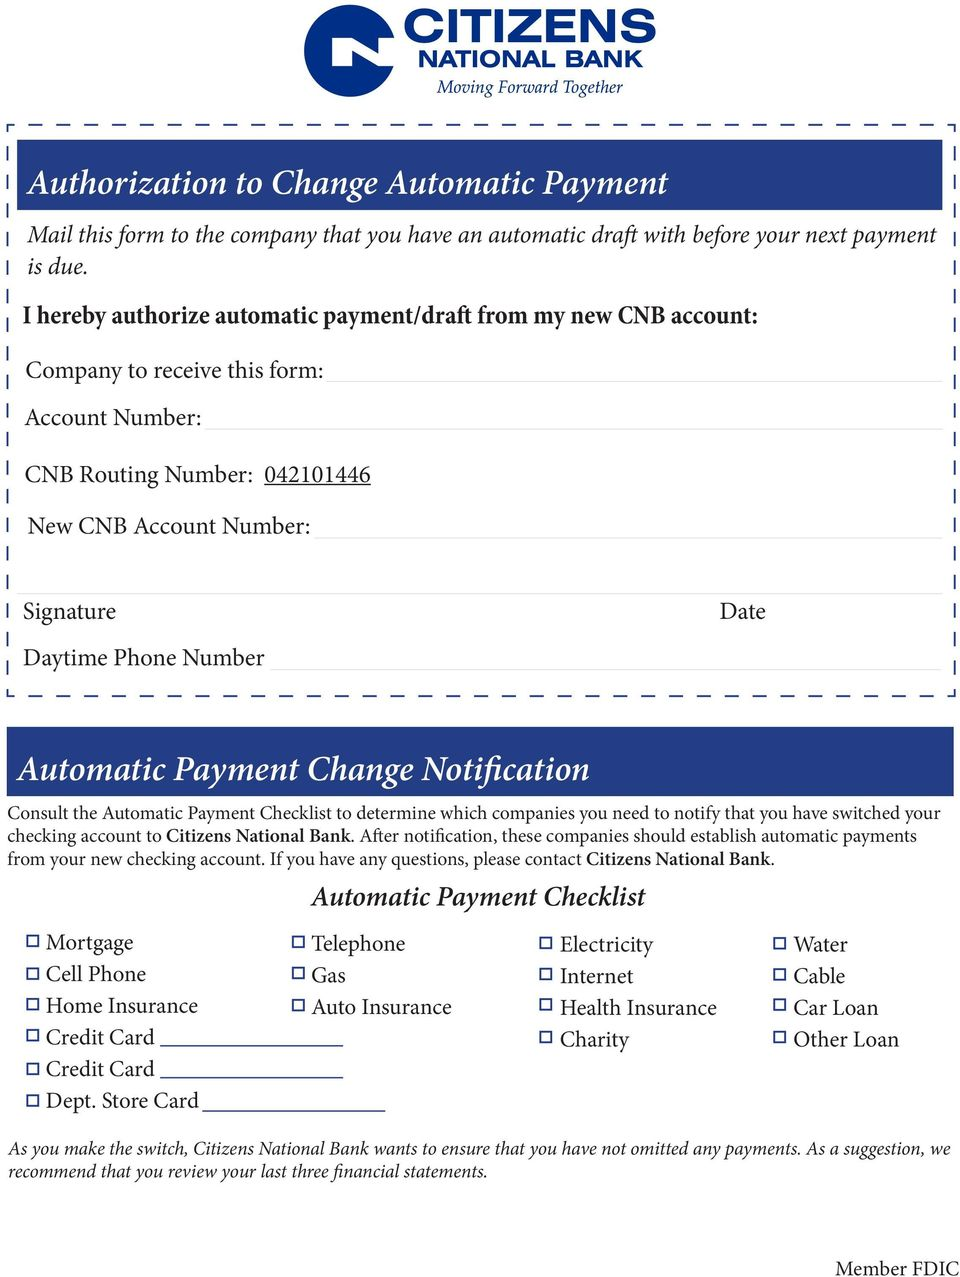 Checklist to determine which companies you need to notify that you have switched your checking account to Citizens National Bank.